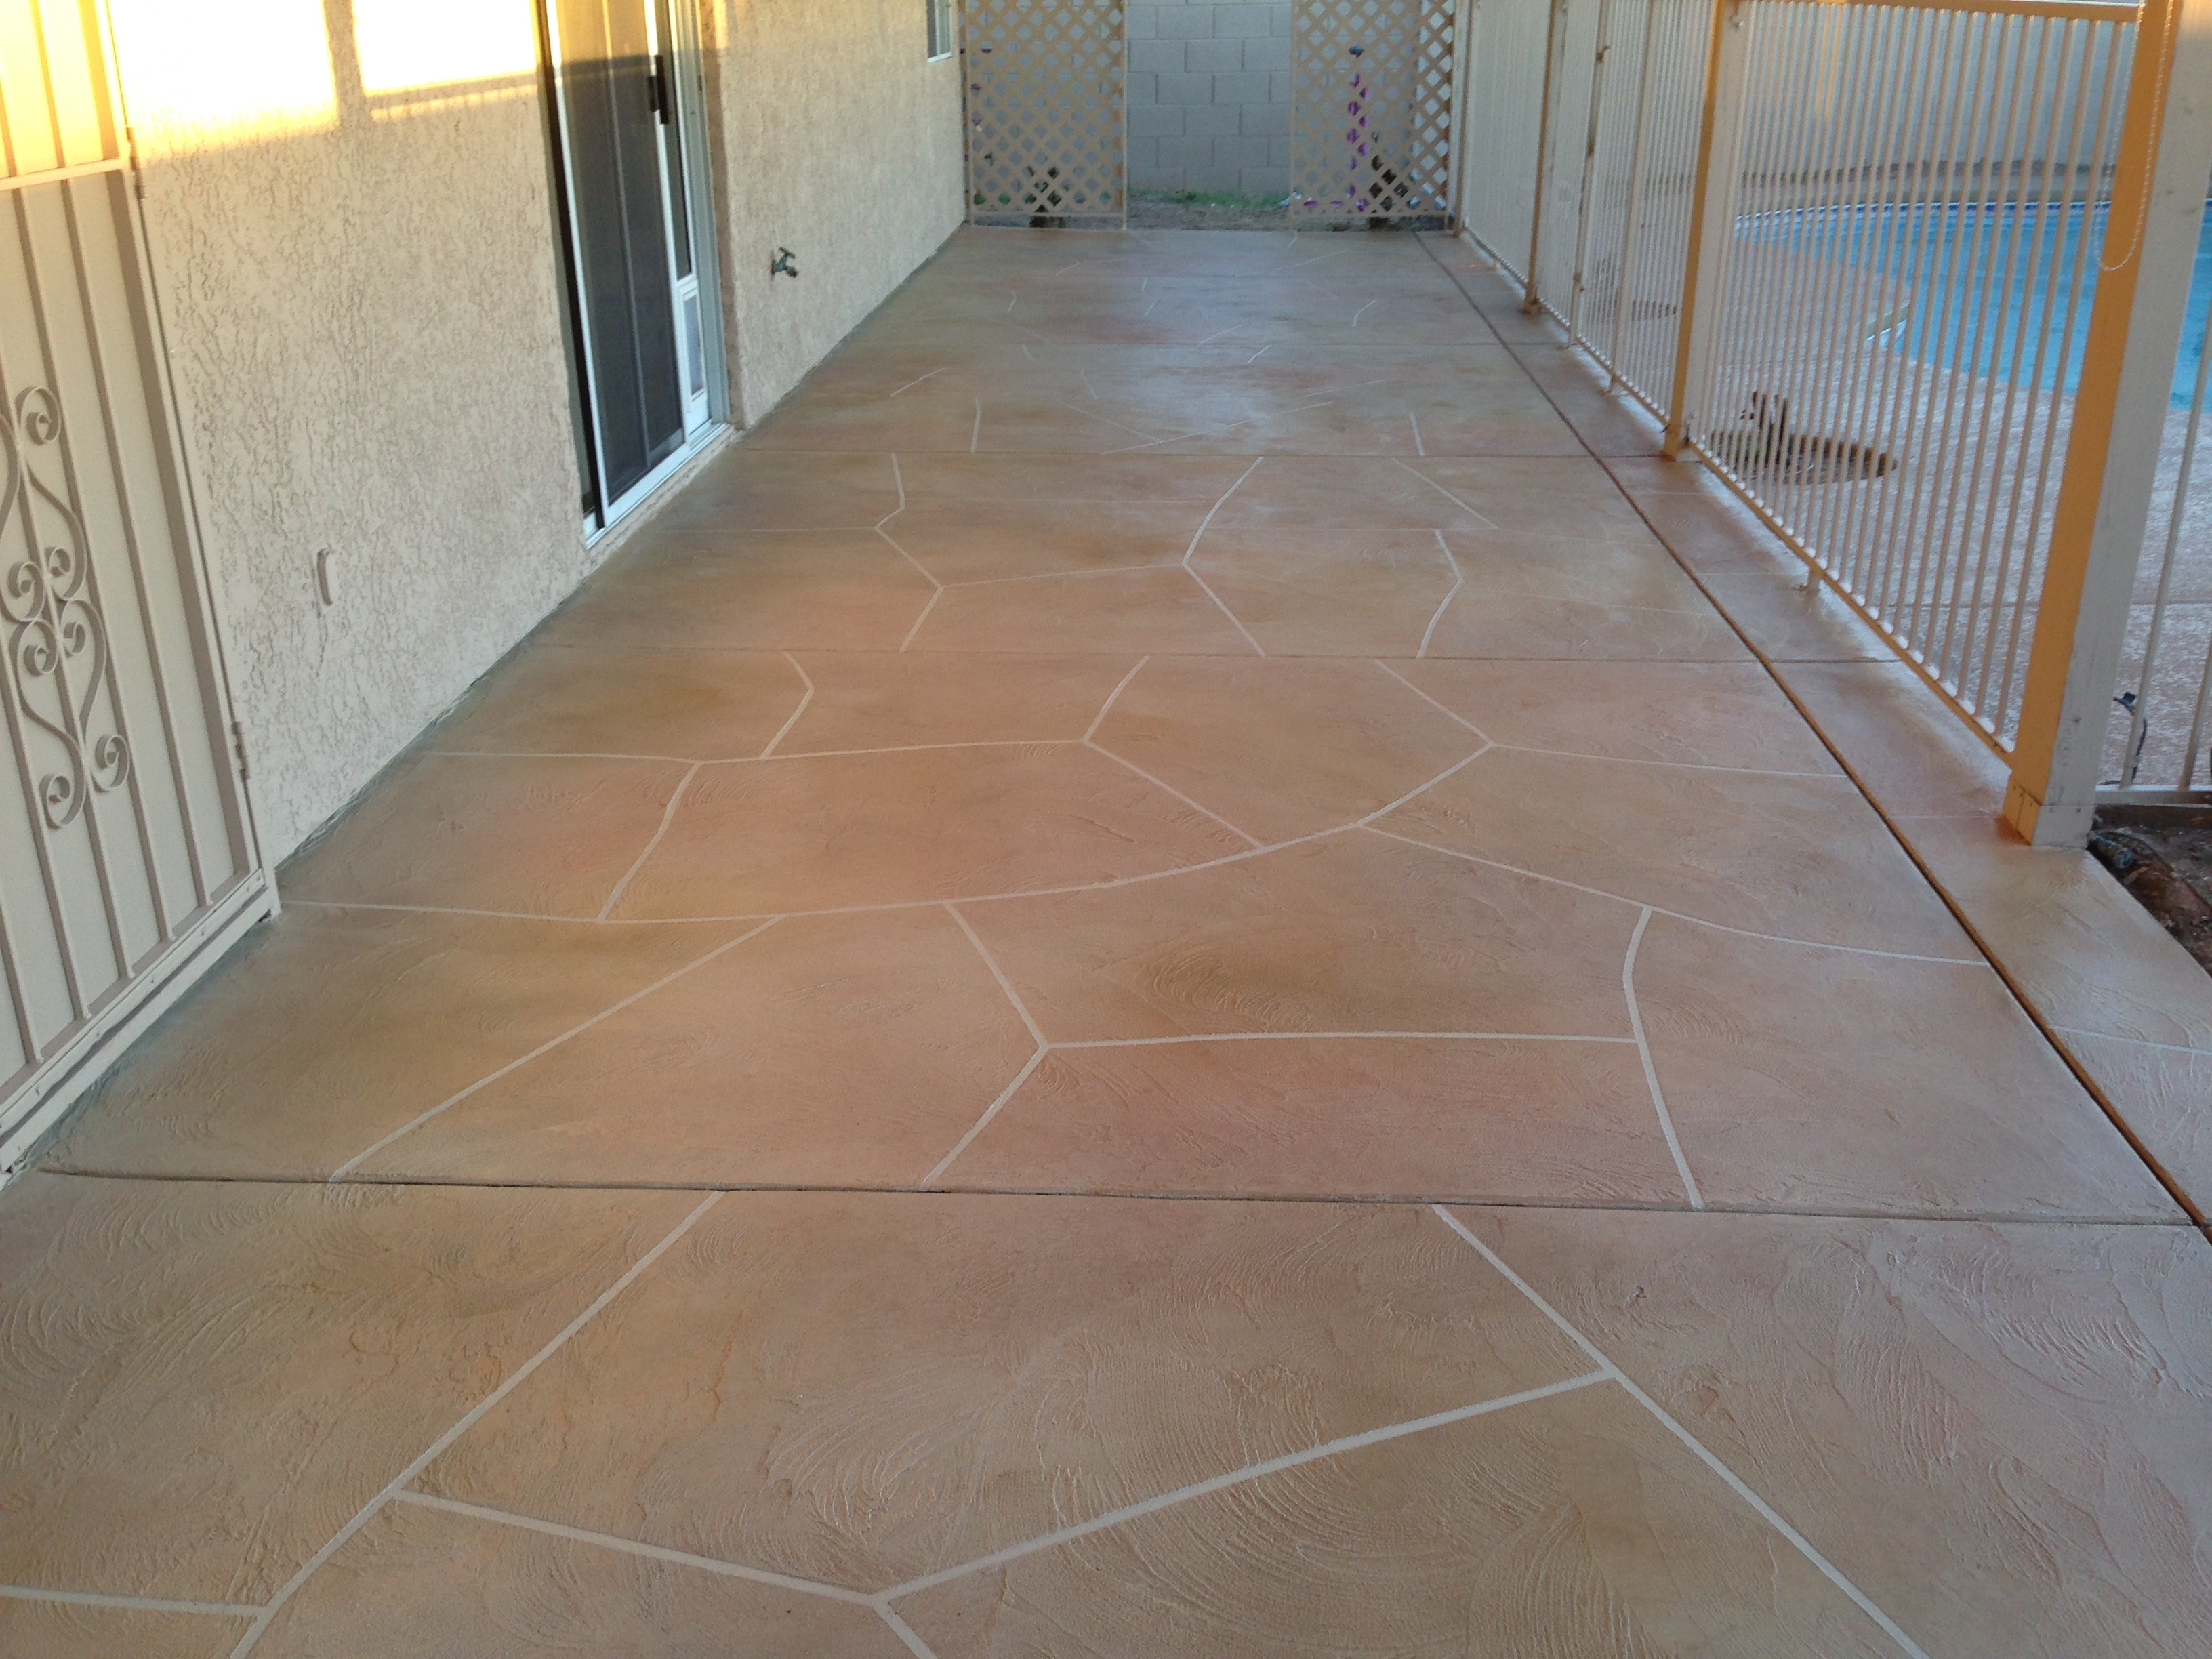 Decorative Concrete Flooring Overlays Arizona Concrete